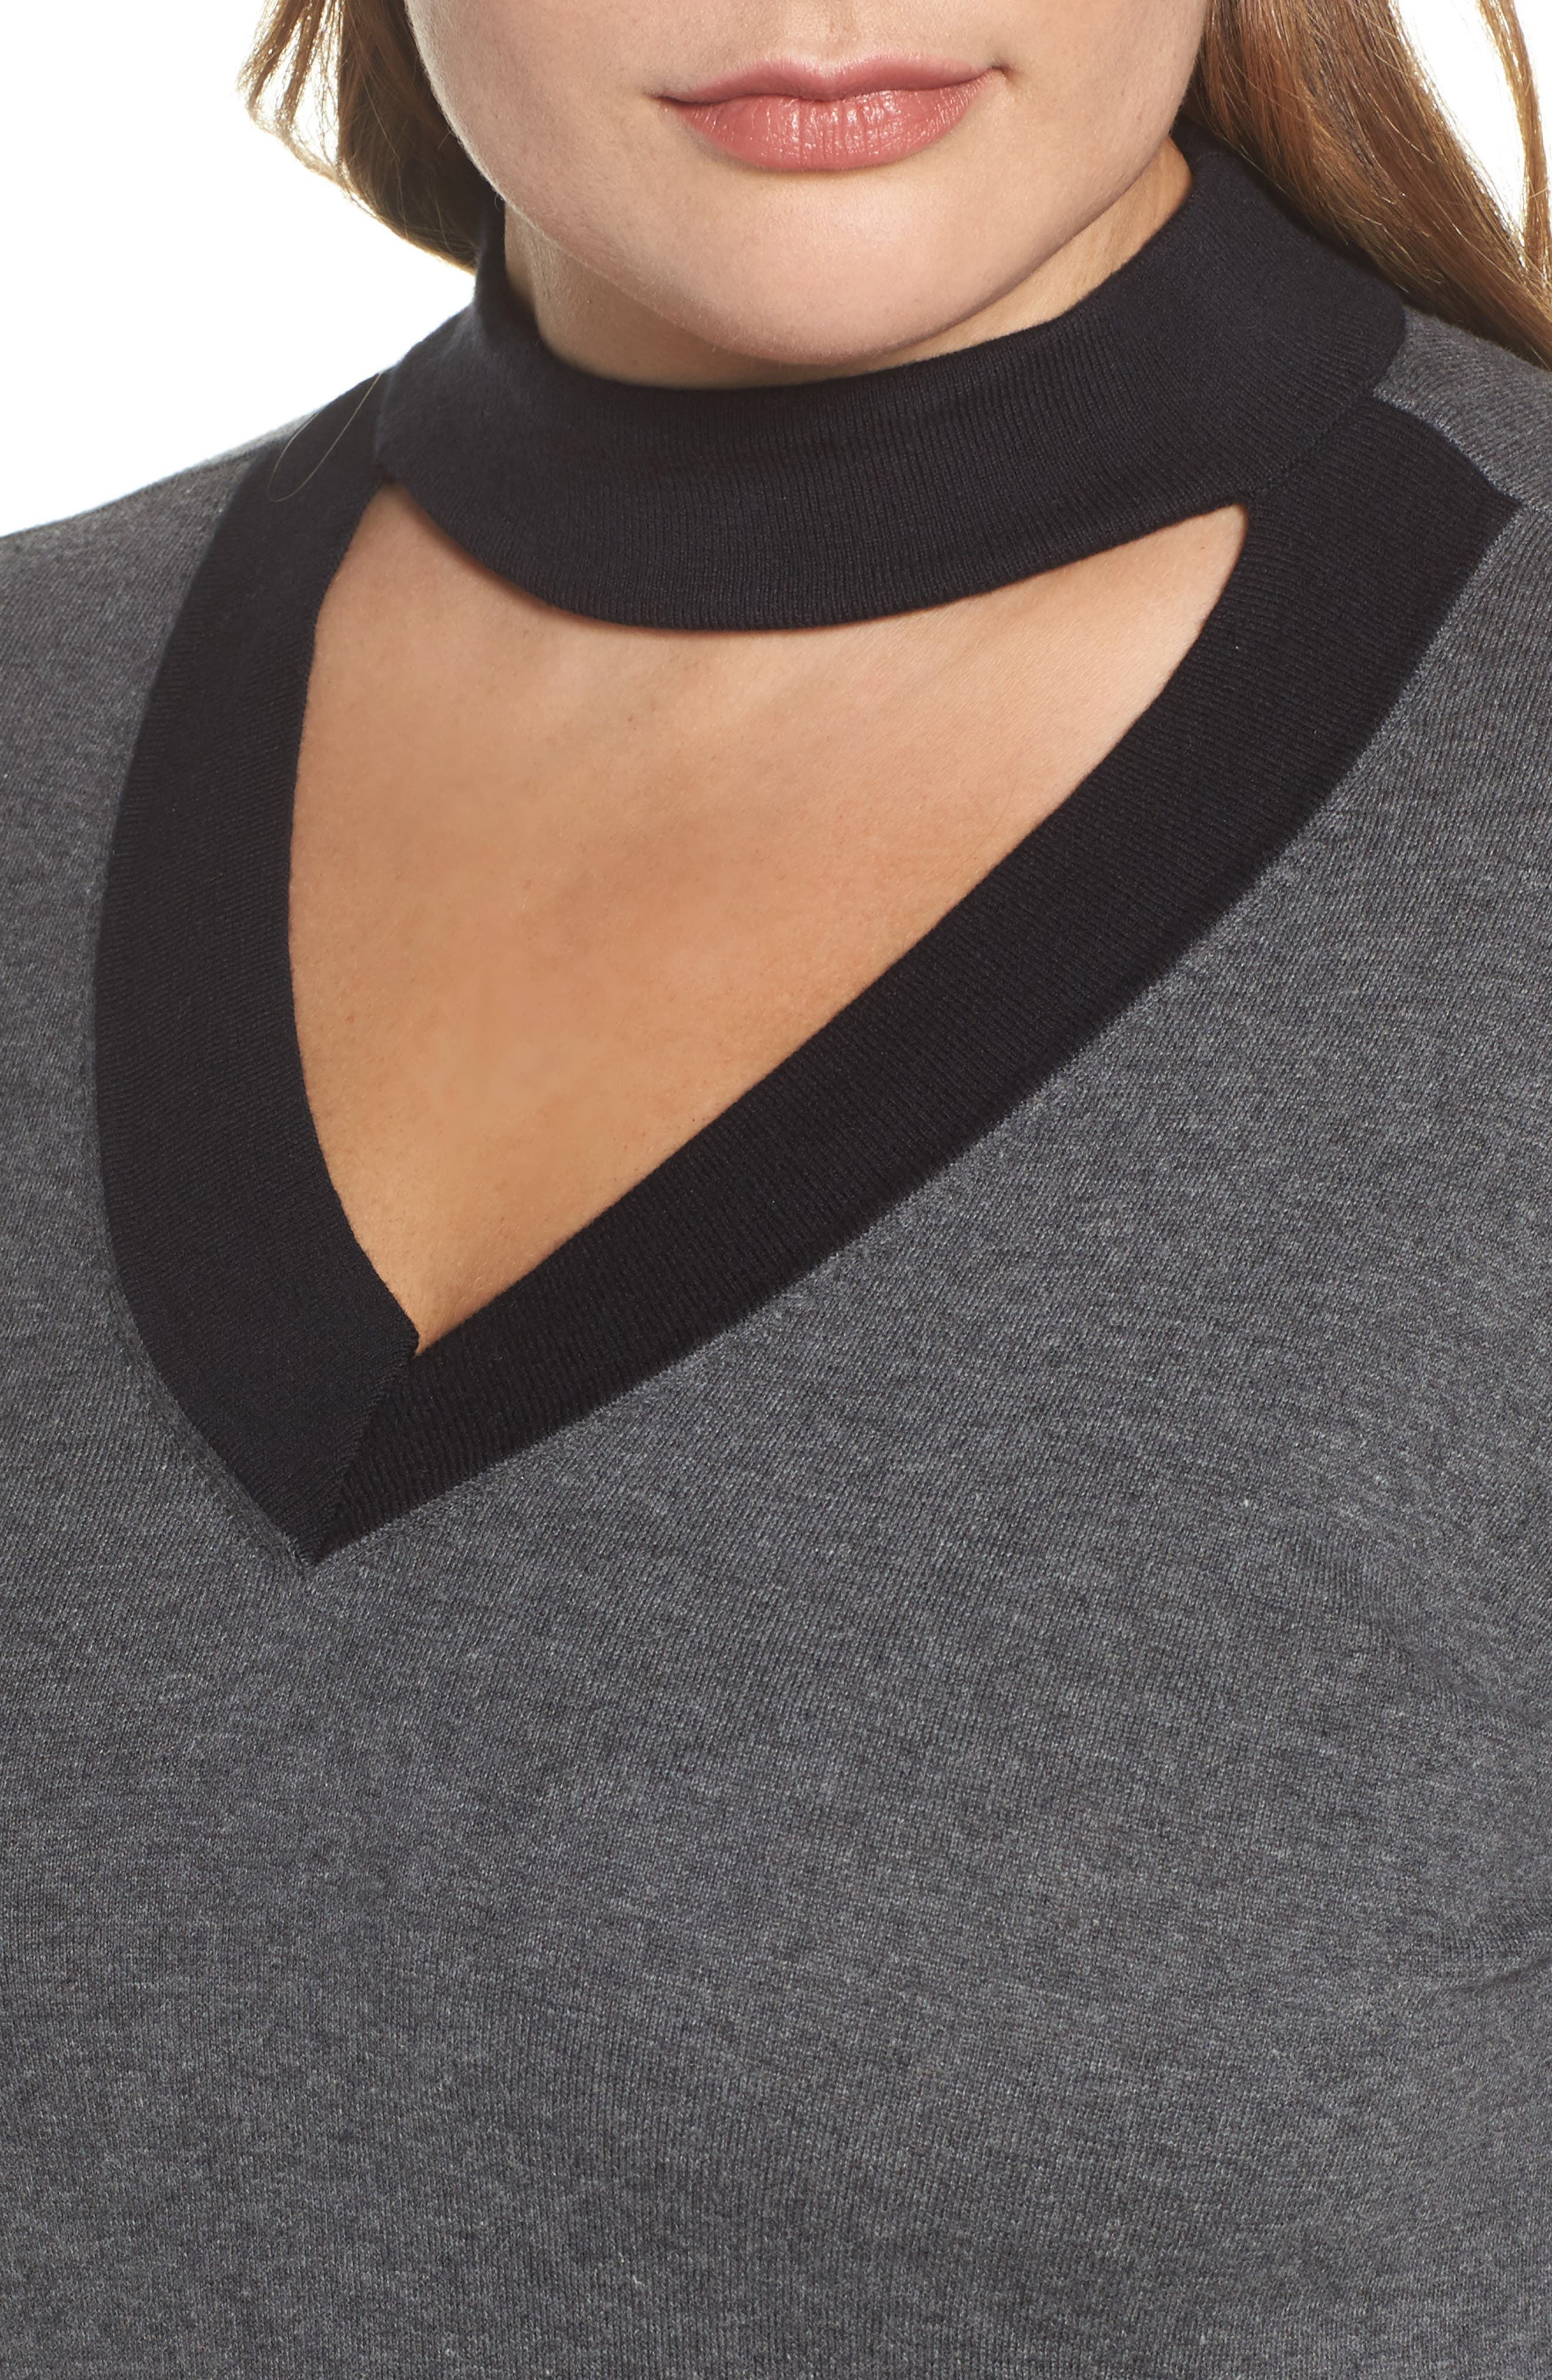 Alternate Image 4  - Vince Camuto Choker Neck Sweater (Plus Size)